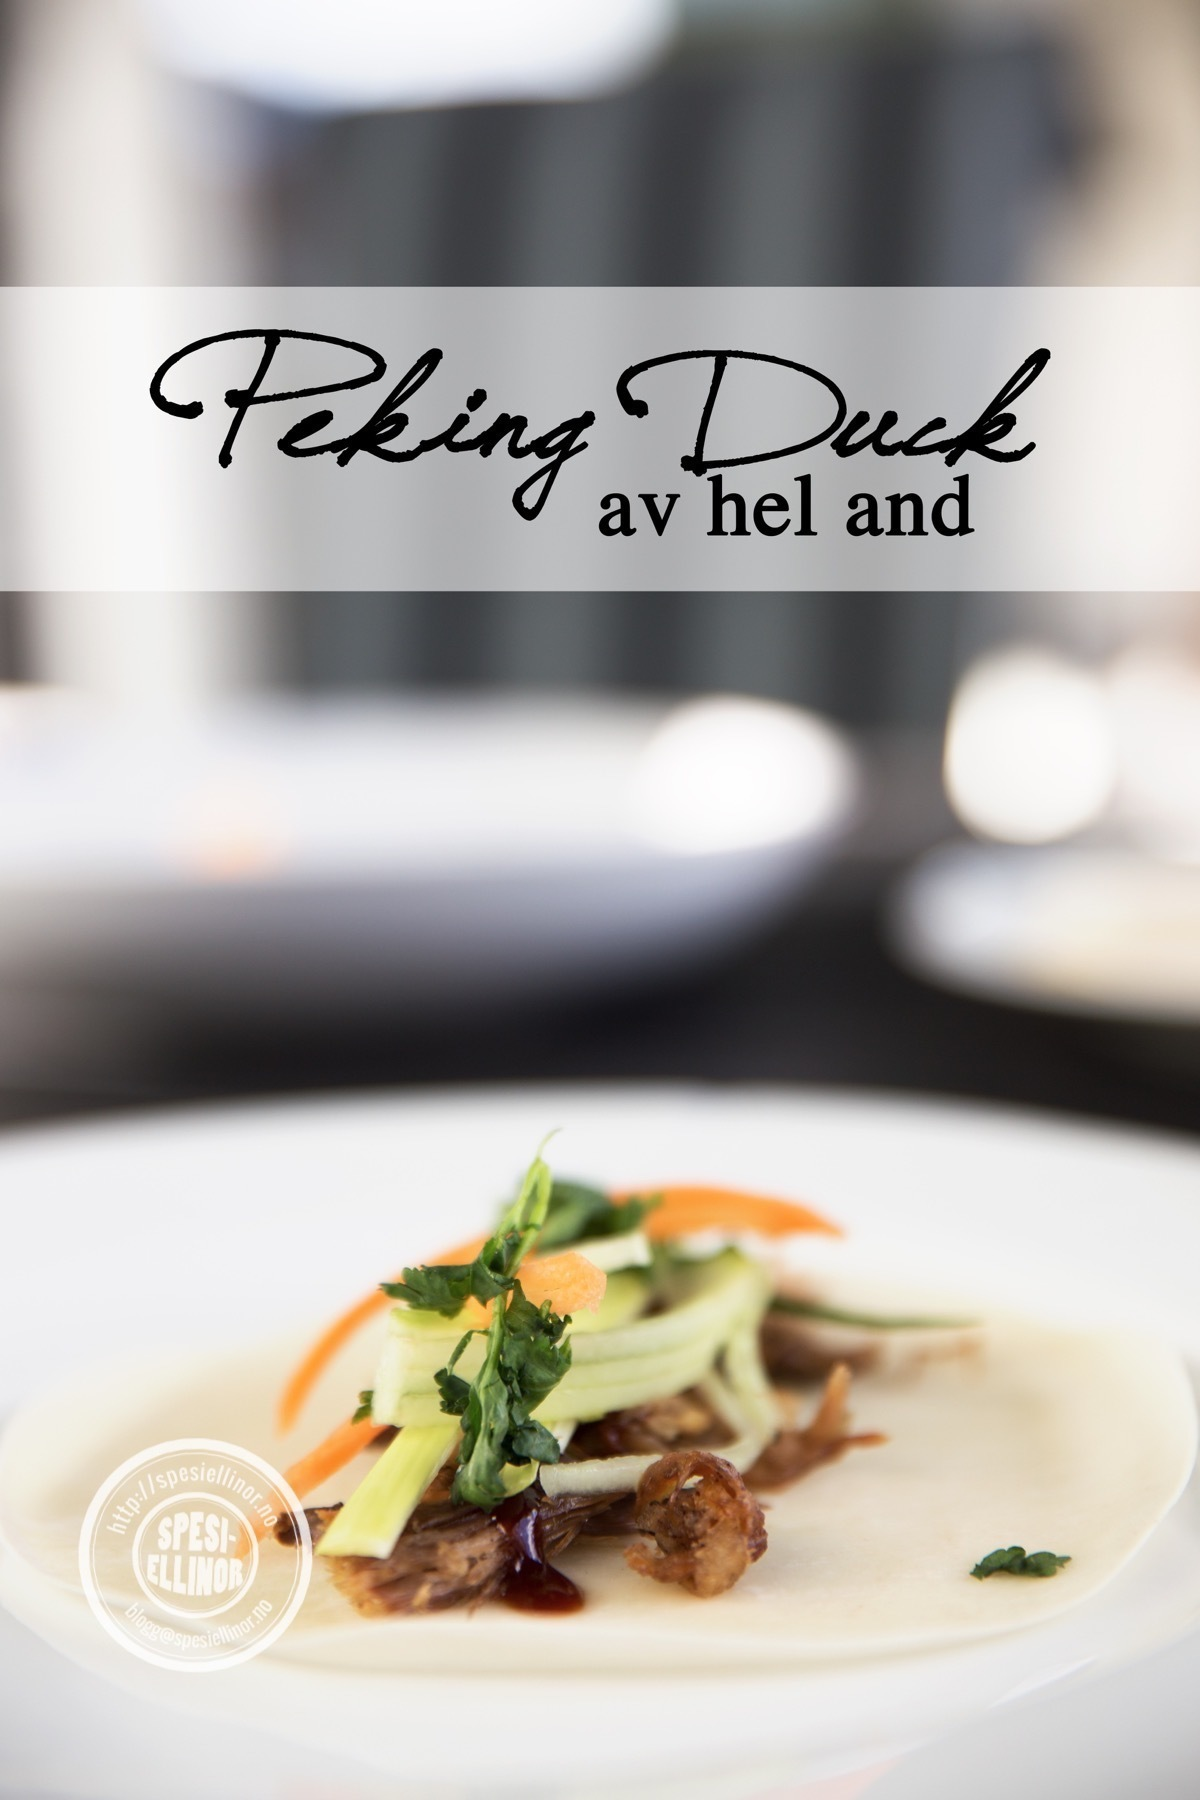 Peking duck av hel and